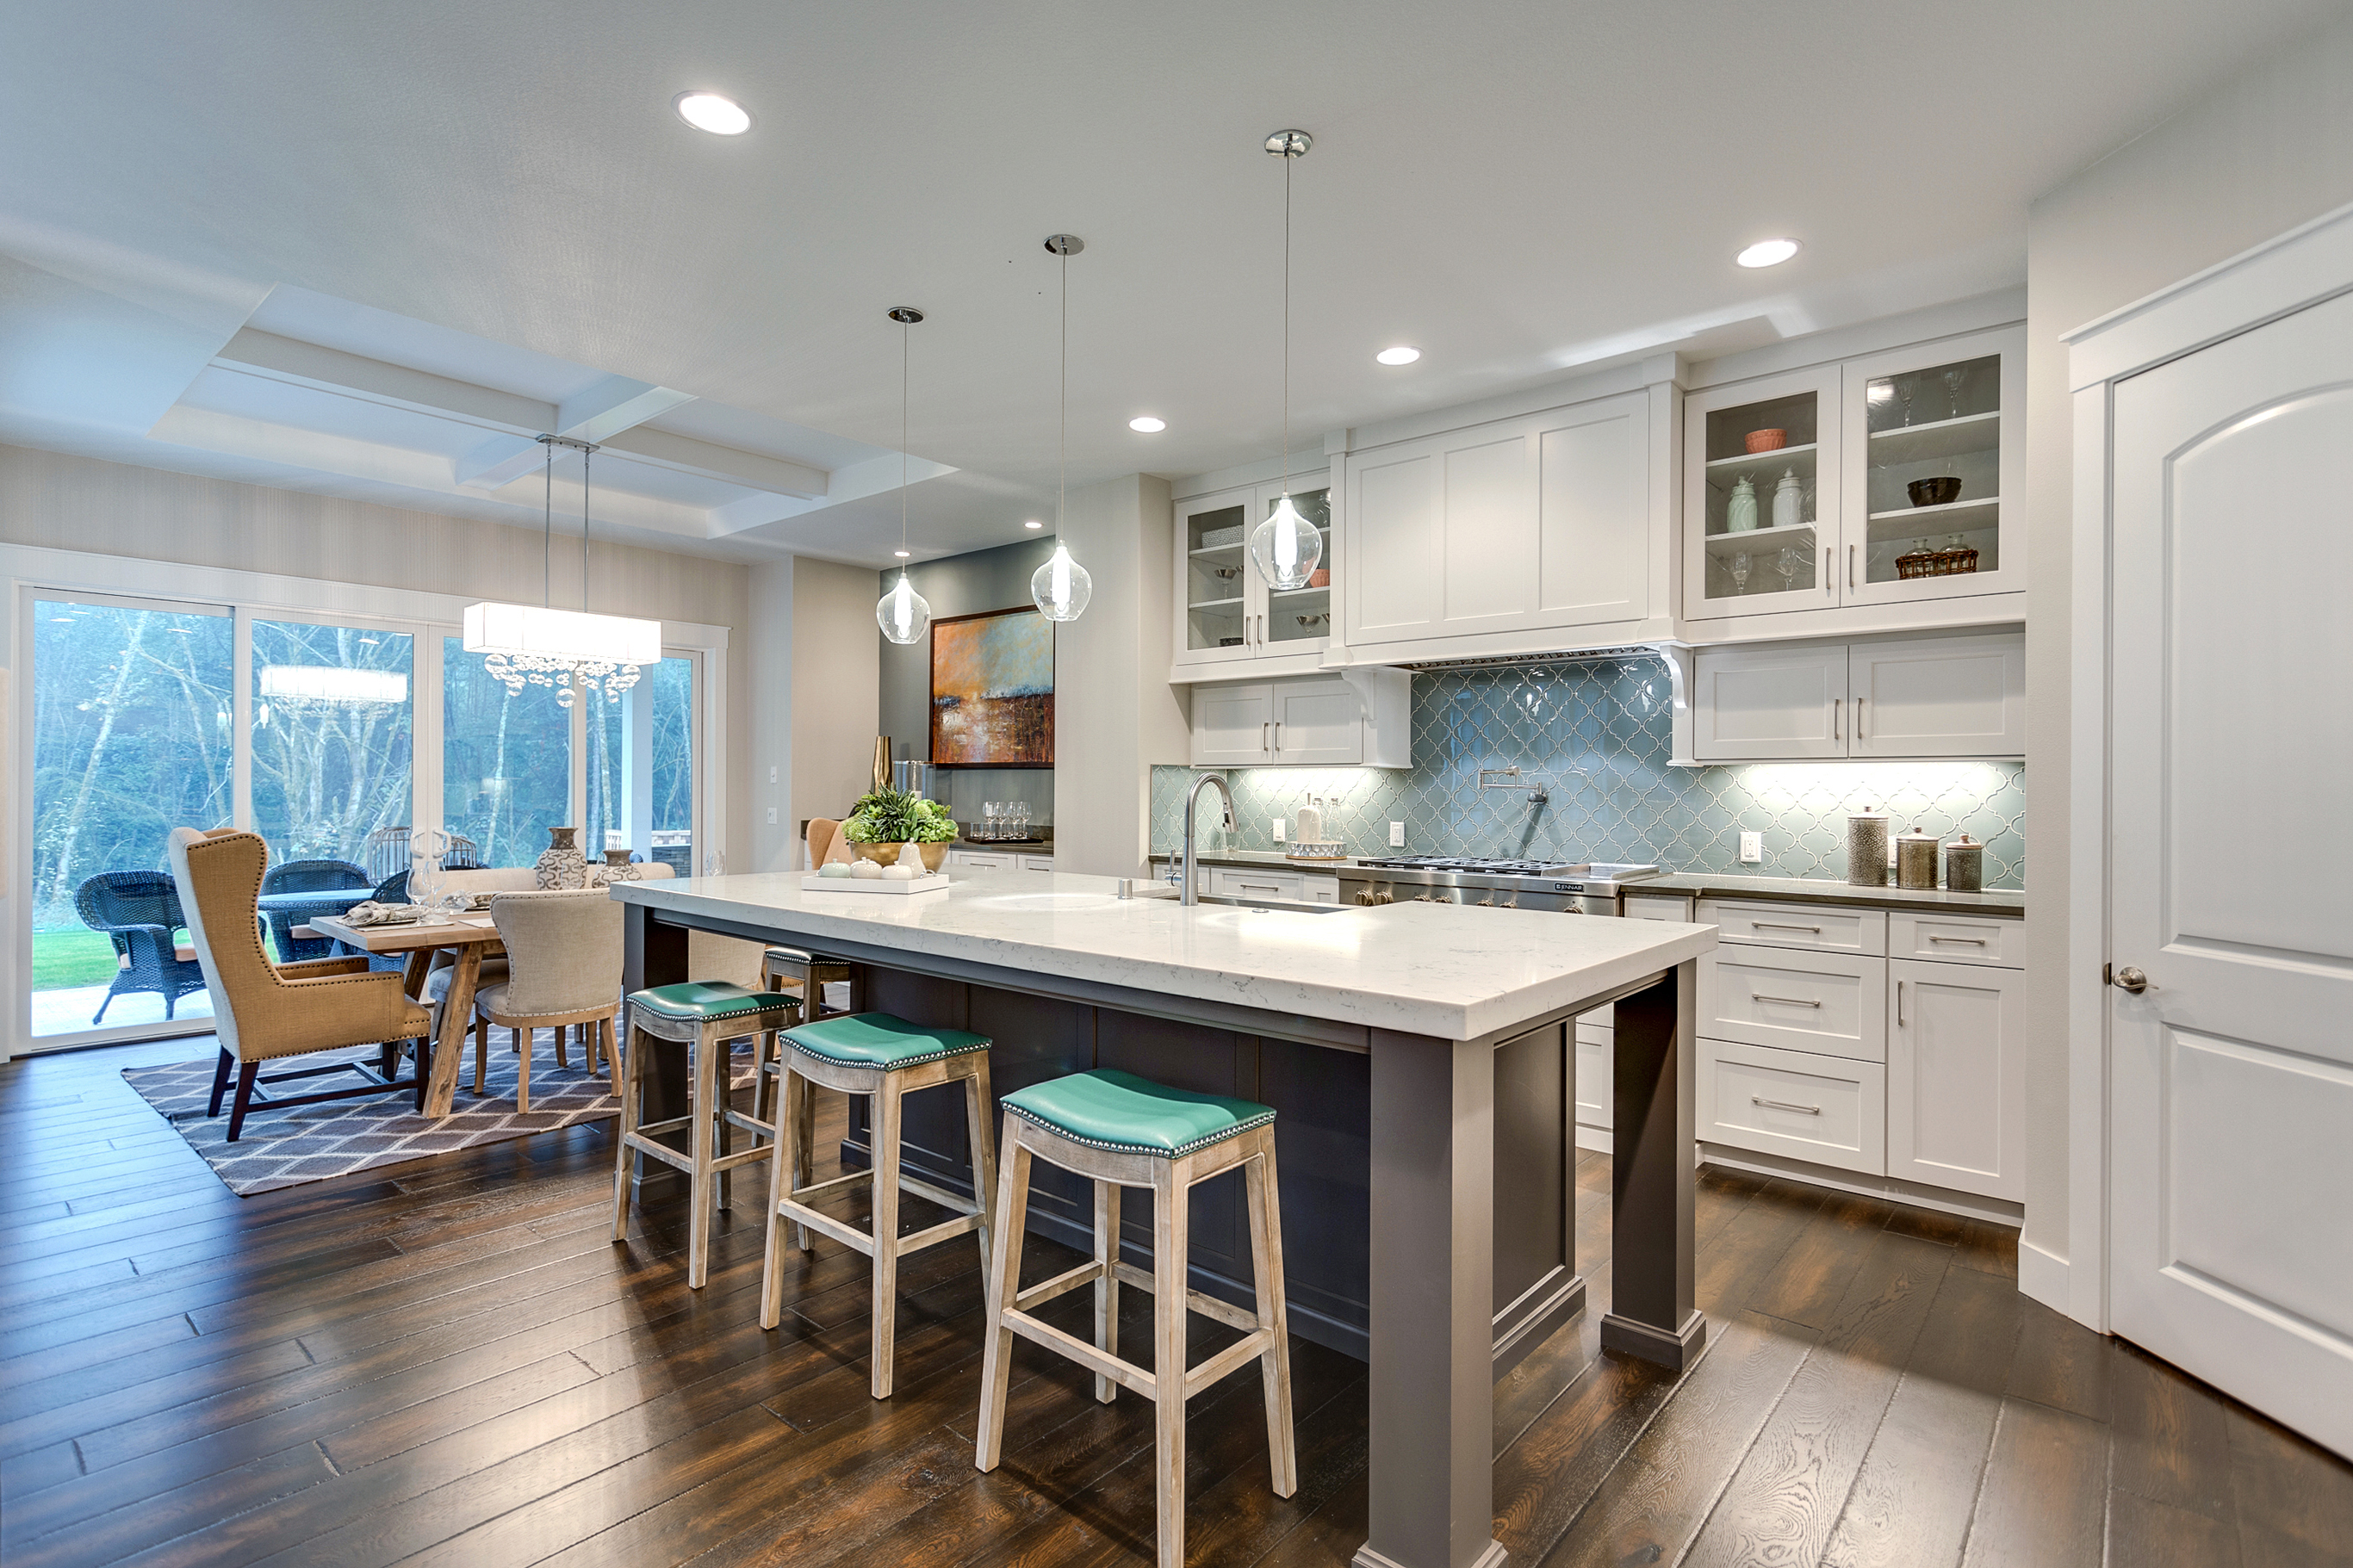 Grey Island Cabinetry